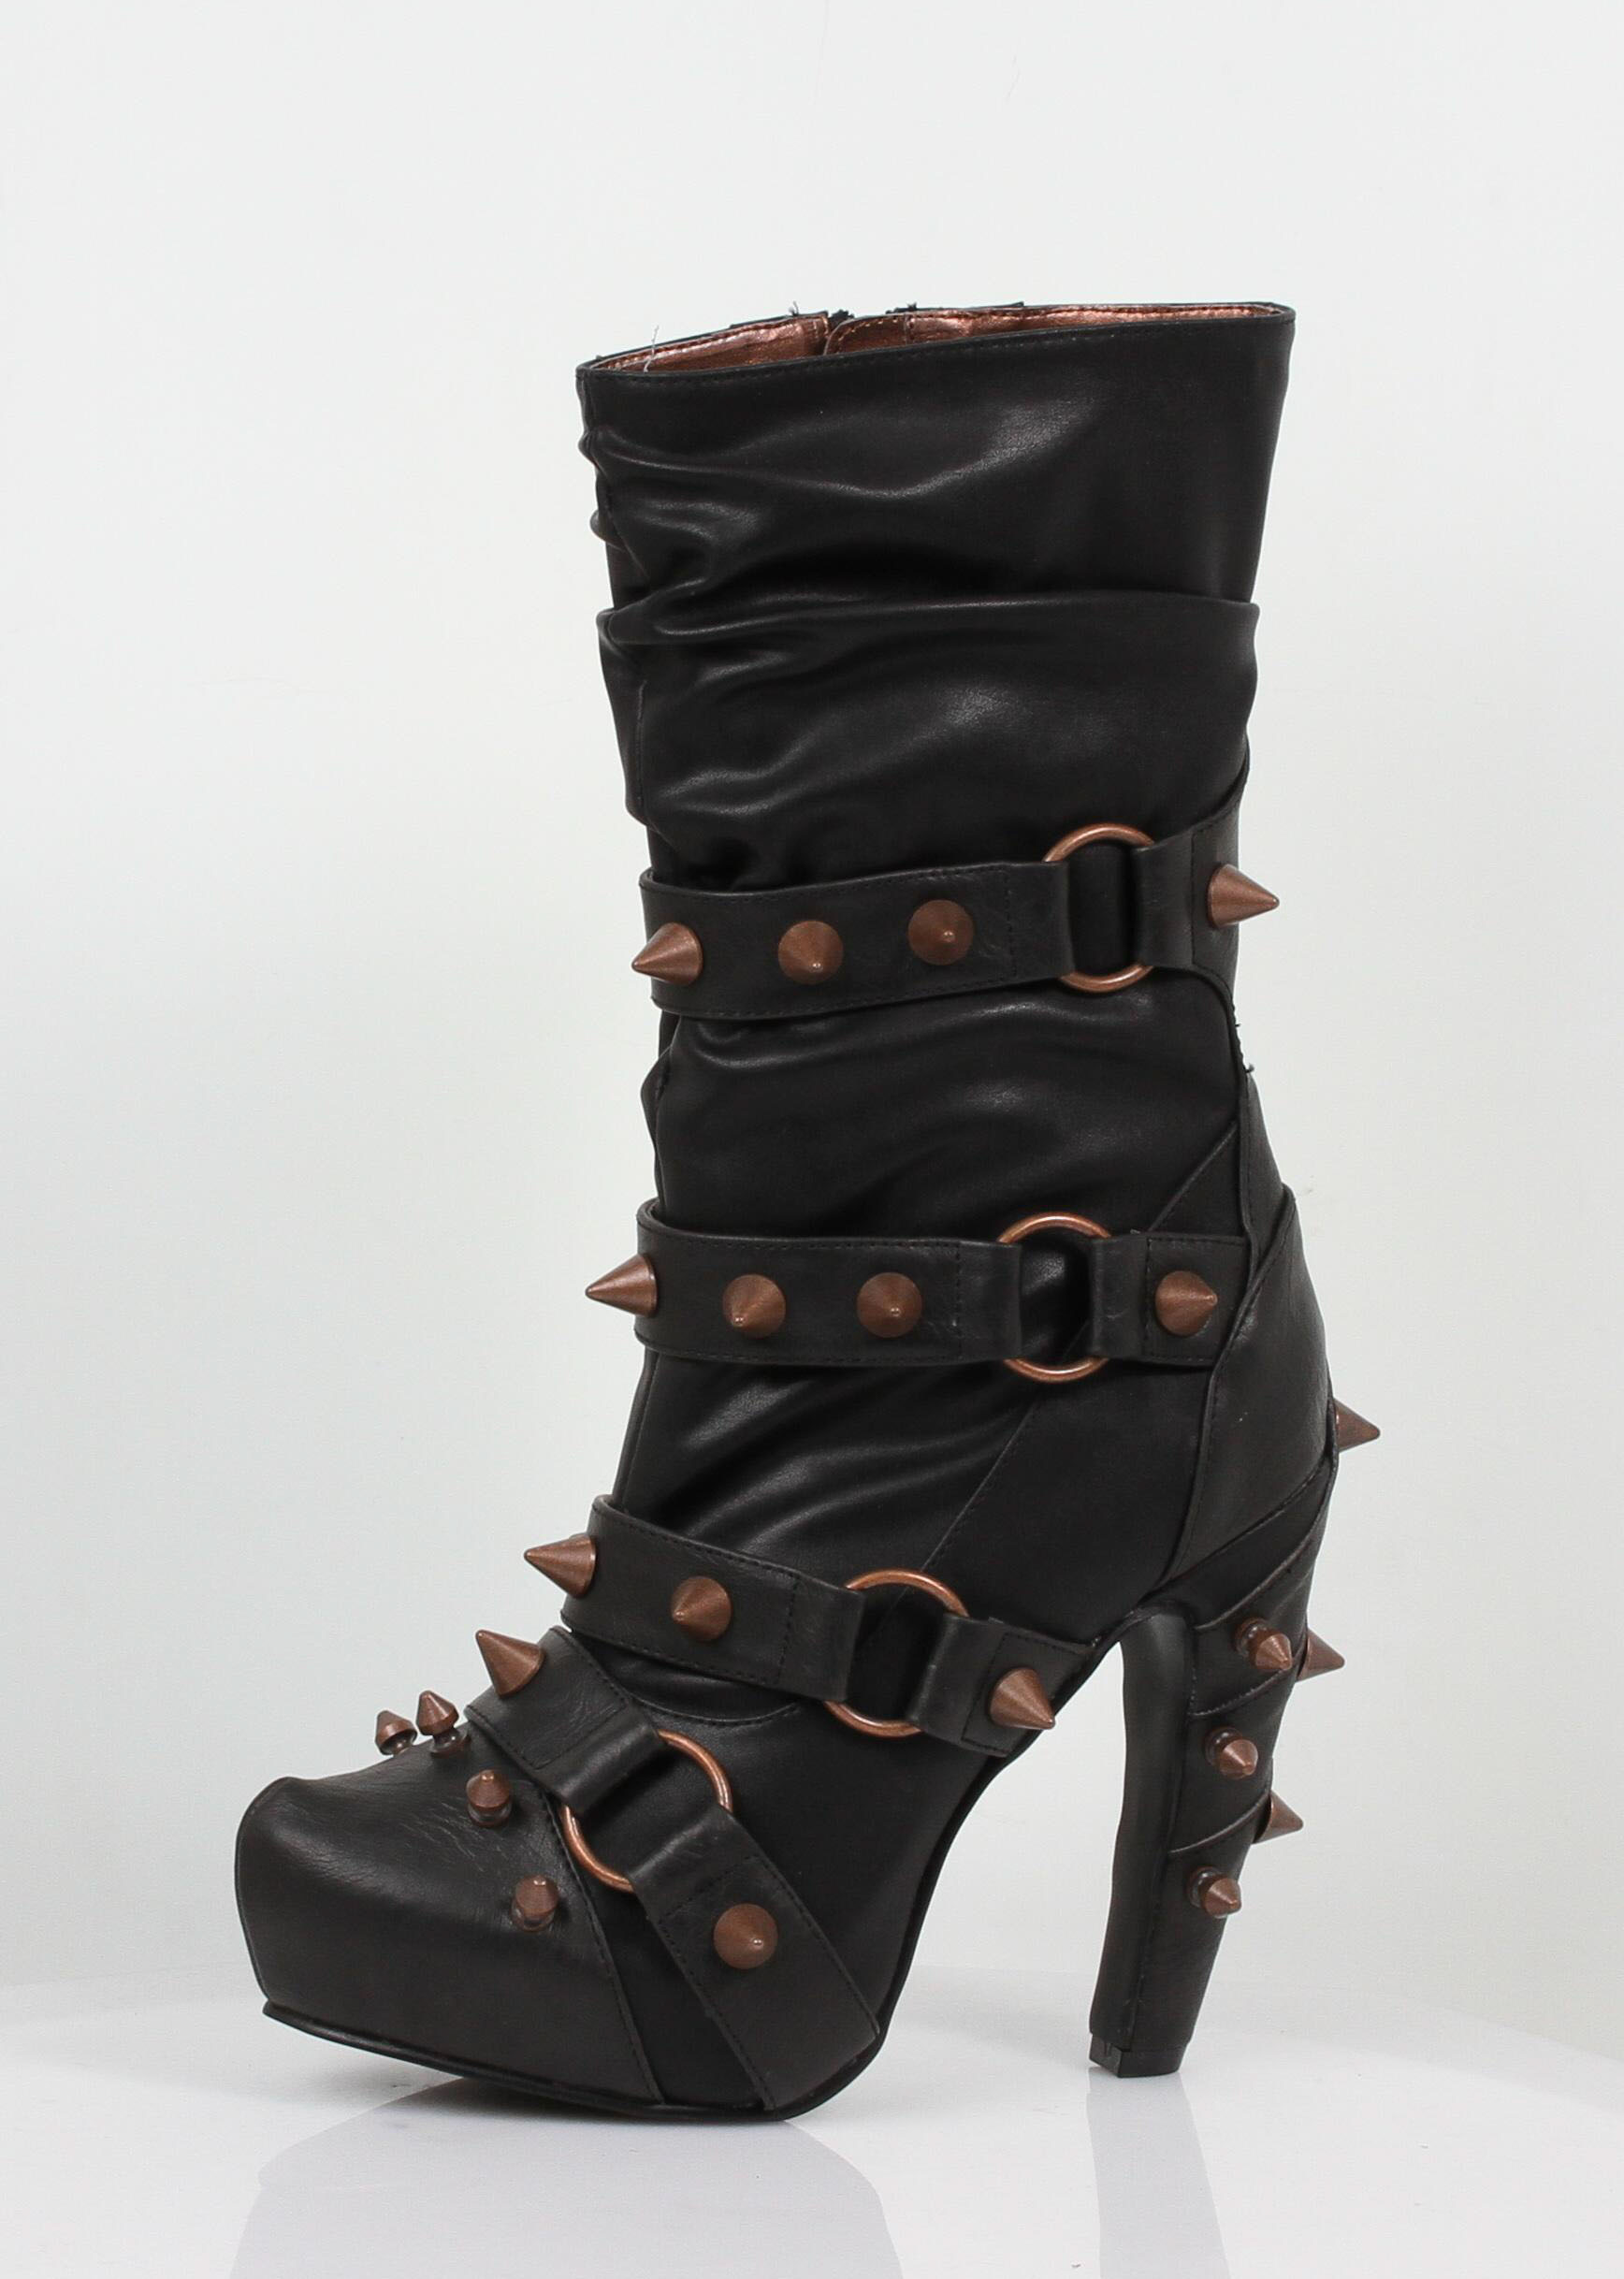 hades_shoes_womens_bjorn_black_studded_boots_boots_3.jpg